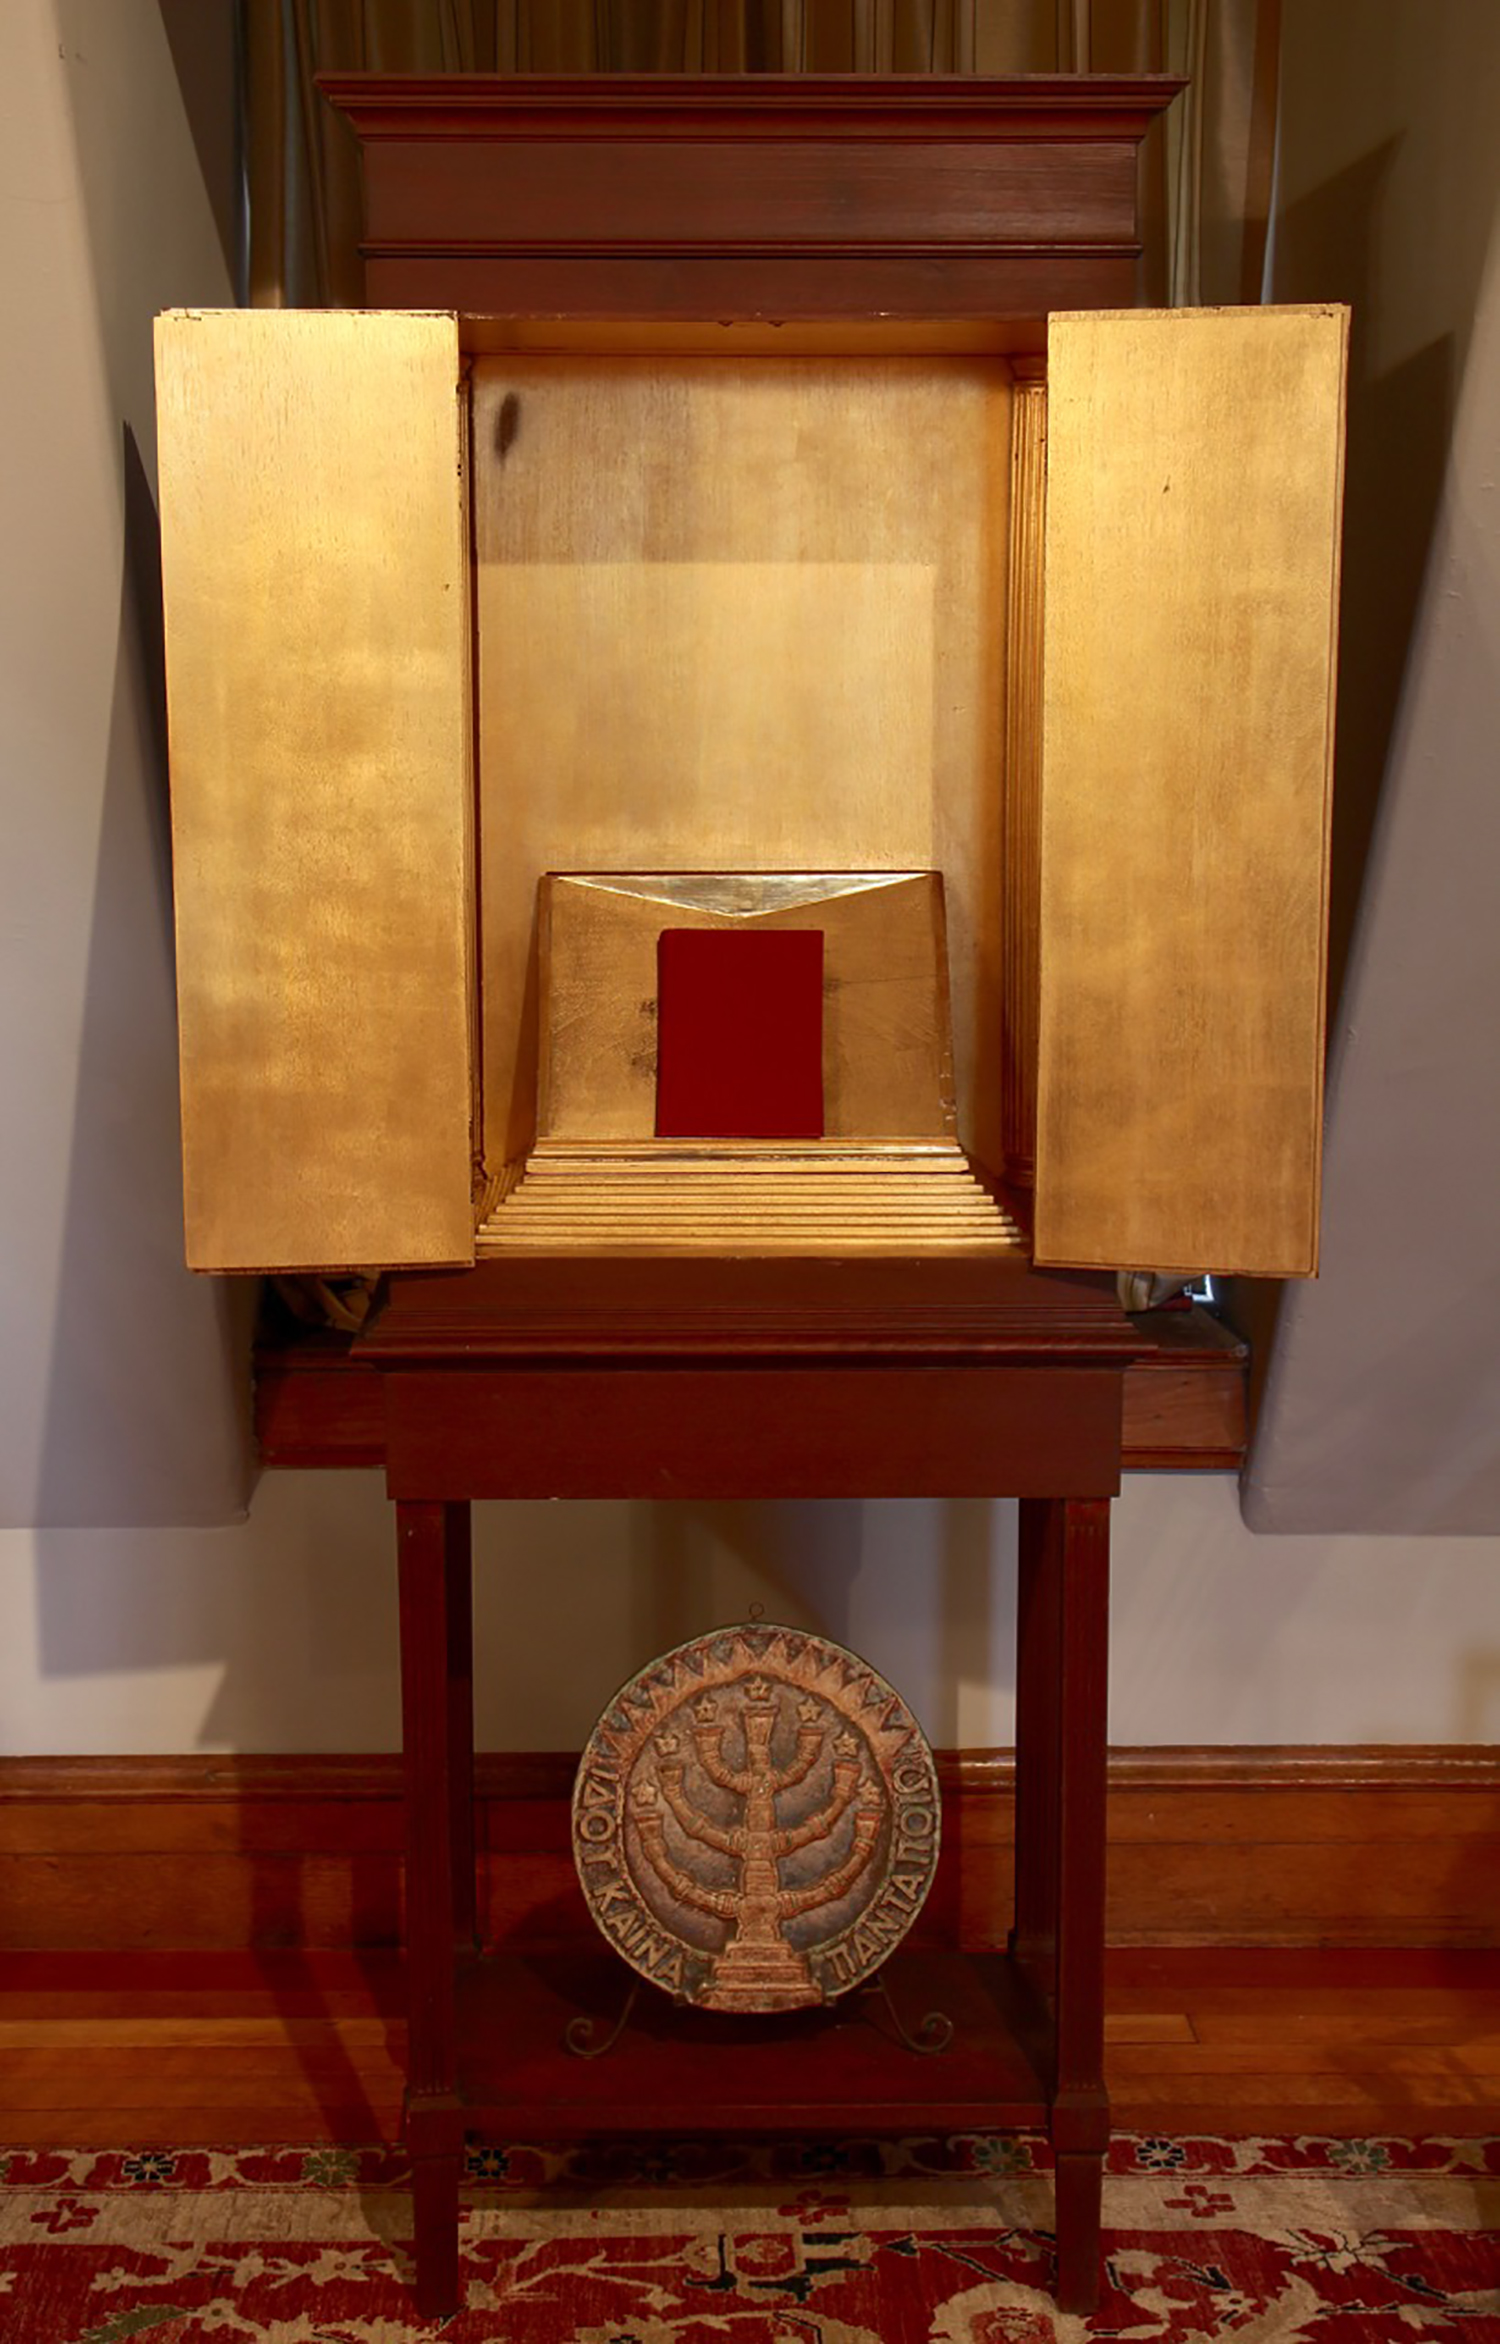 Figure 8: A special Bible cabinet was designed for the living room by Bryn Athyn artist Winfred Hyatt. It was given to John Pitcairn by Raymond and Mildred as a Christmas present in 1915.